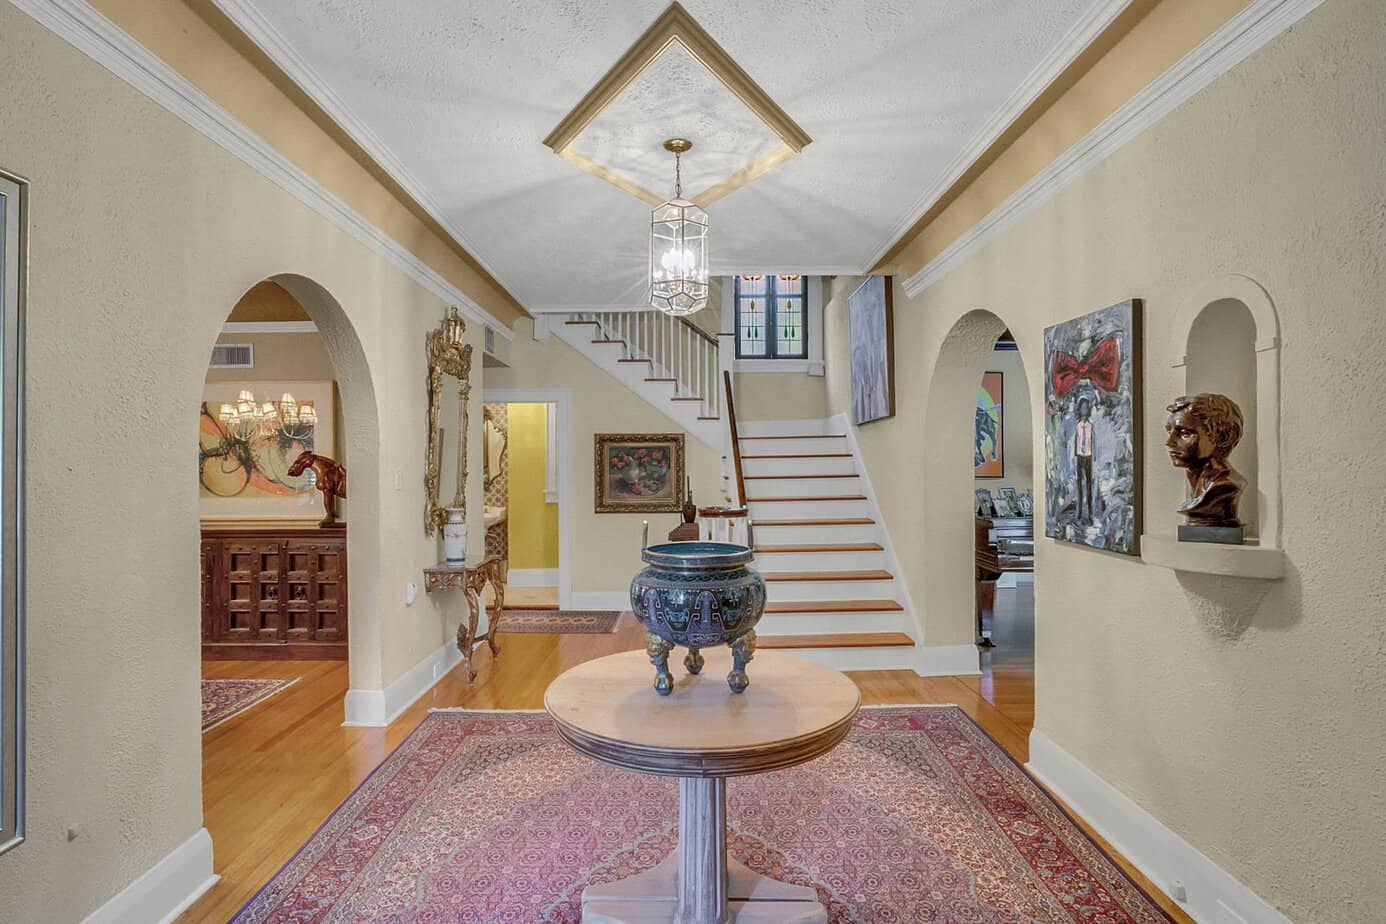 Image of the 13 x 16 foyer with a red rug, wood floors, staircase, and two arched doors, and table in middle for the home for sale at 4024 W Bay to Bay Tampa FL 33629